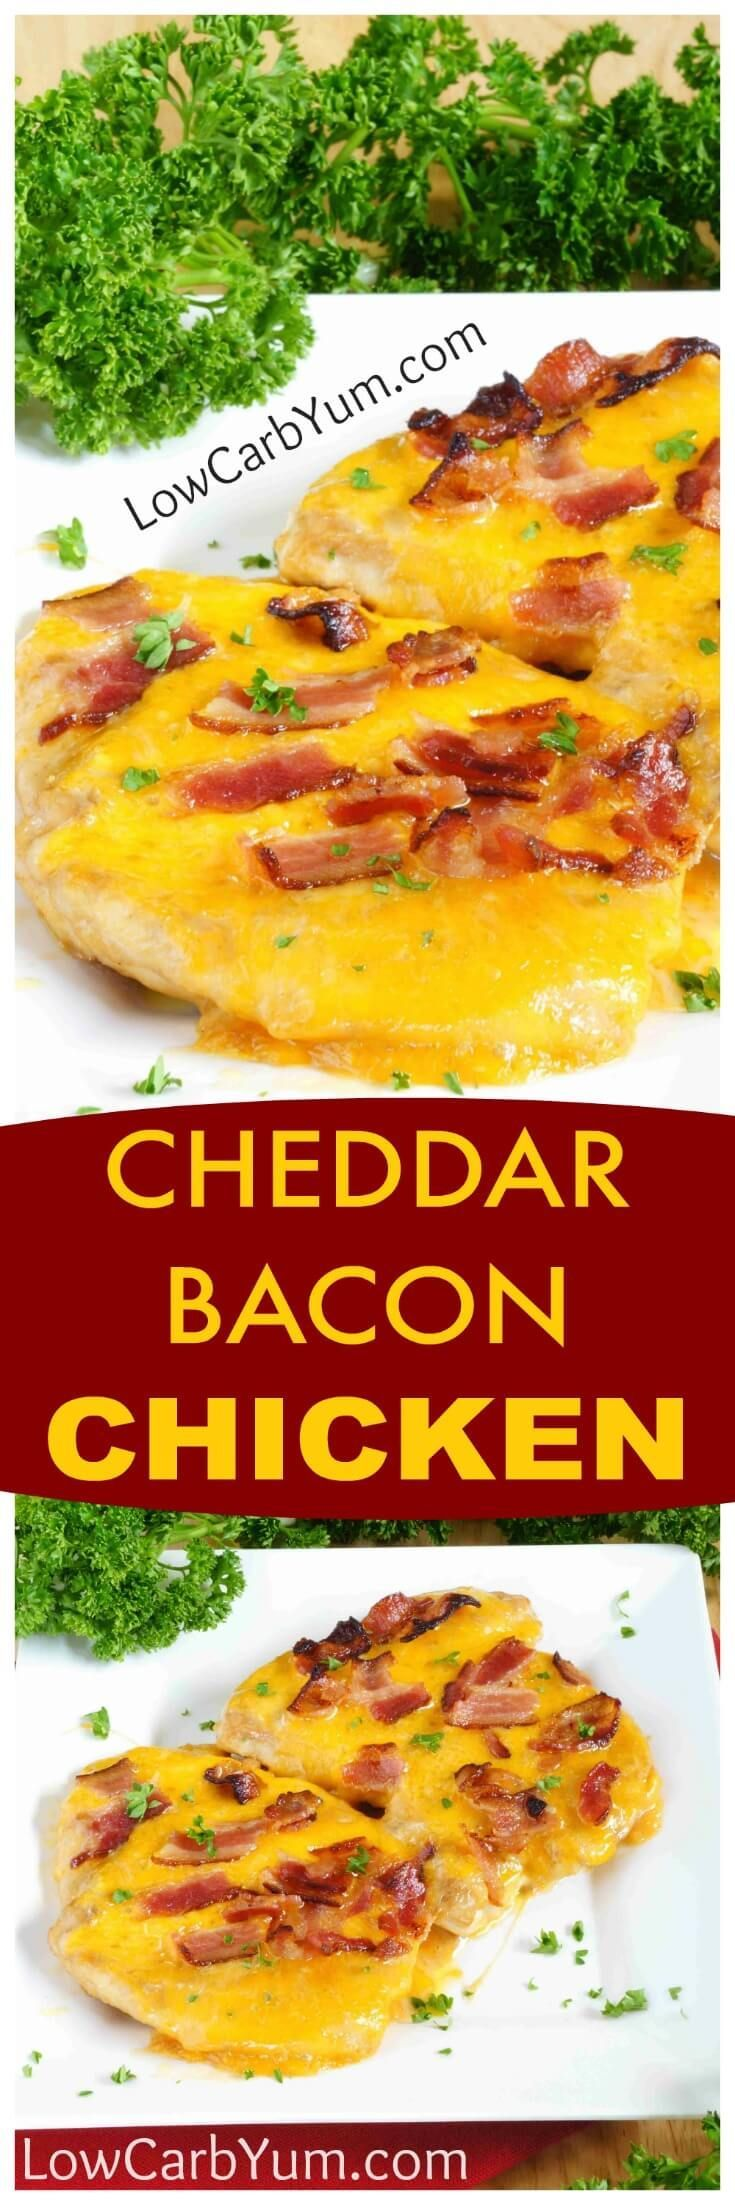 An easy cheddar chicken bacon cheese recipe turns plain chicken into something special. A little teriyaki and ranch dressing enhances the flavor. | http://LowCarbYum.com